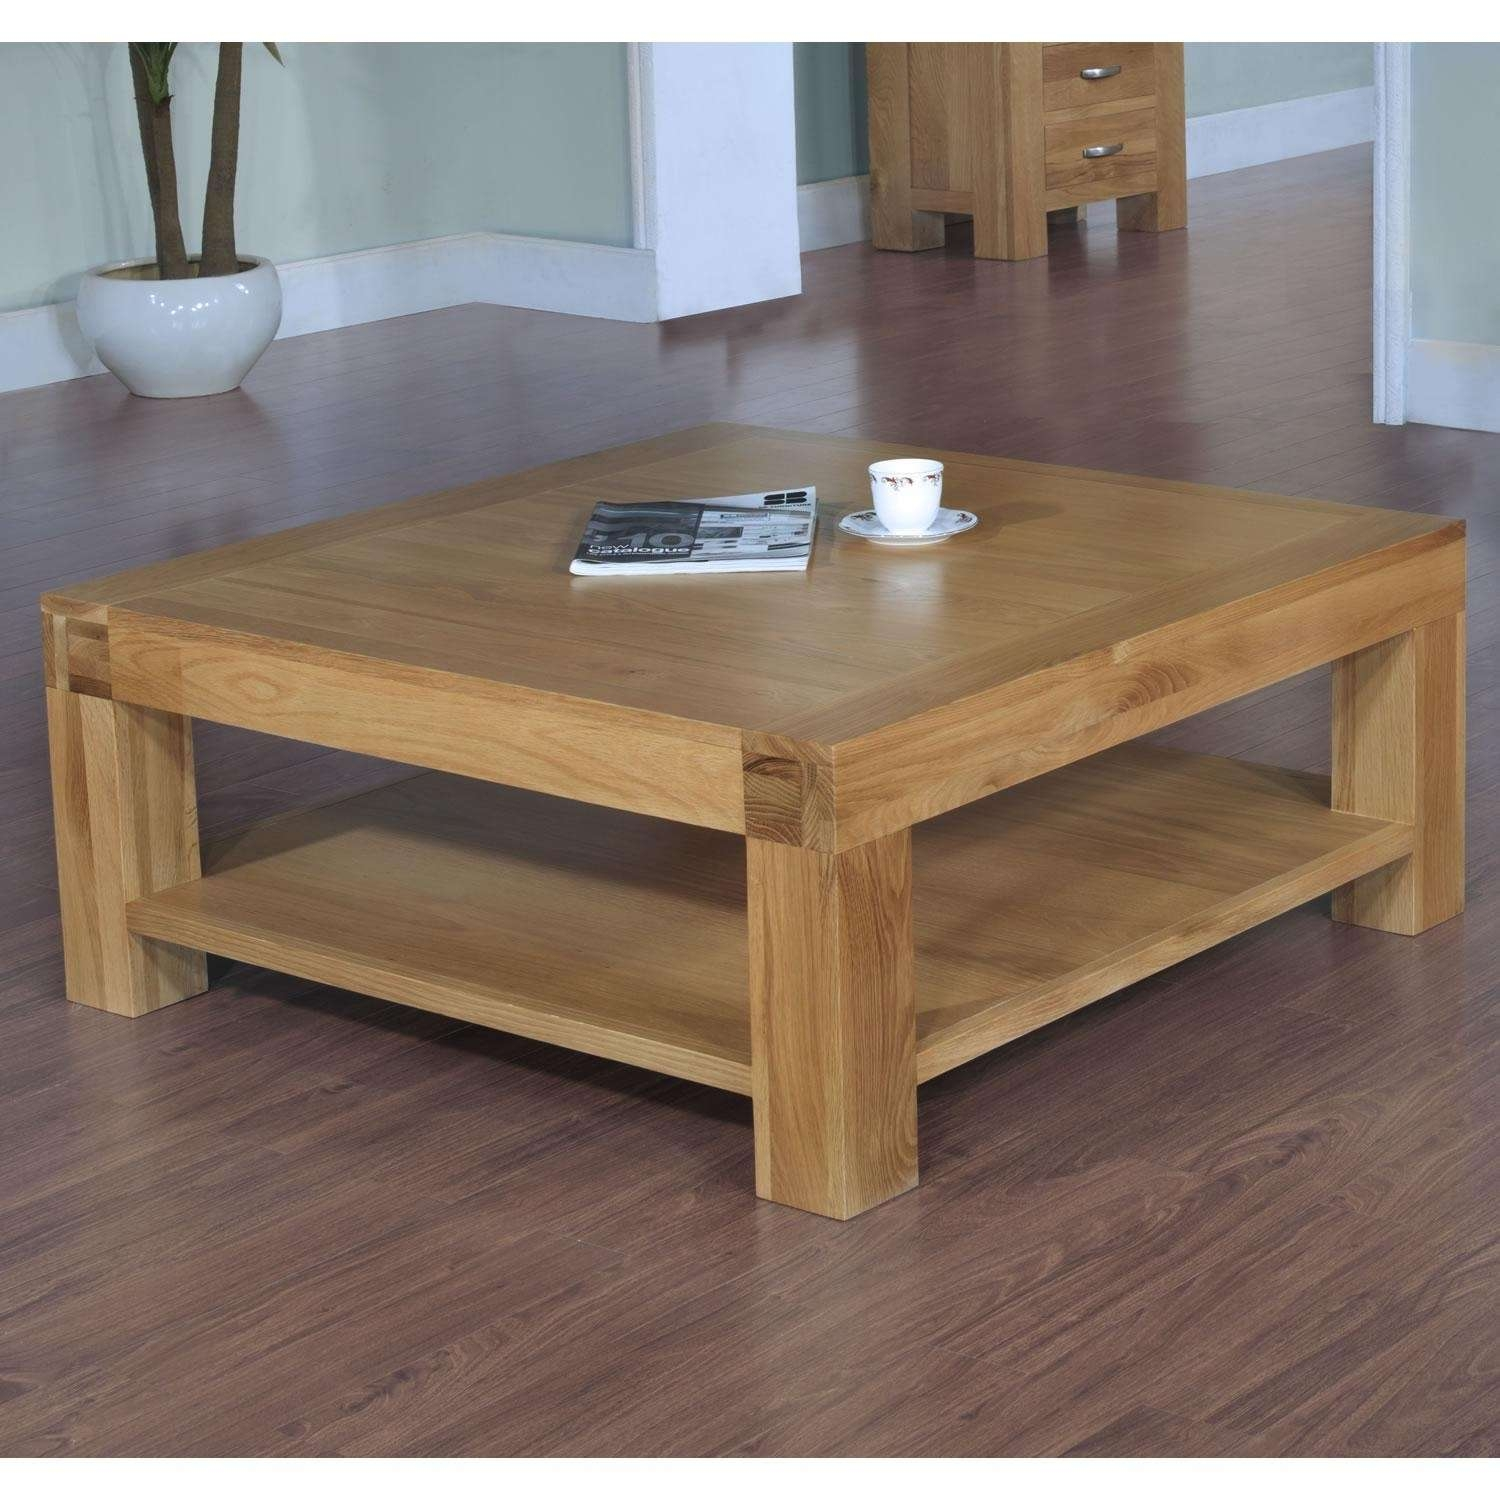 Coffee Tables : Large Oak Beam Coffee Table Coffee Addicts With Inside Recent Solid Oak Beam Coffee Table (View 5 of 20)